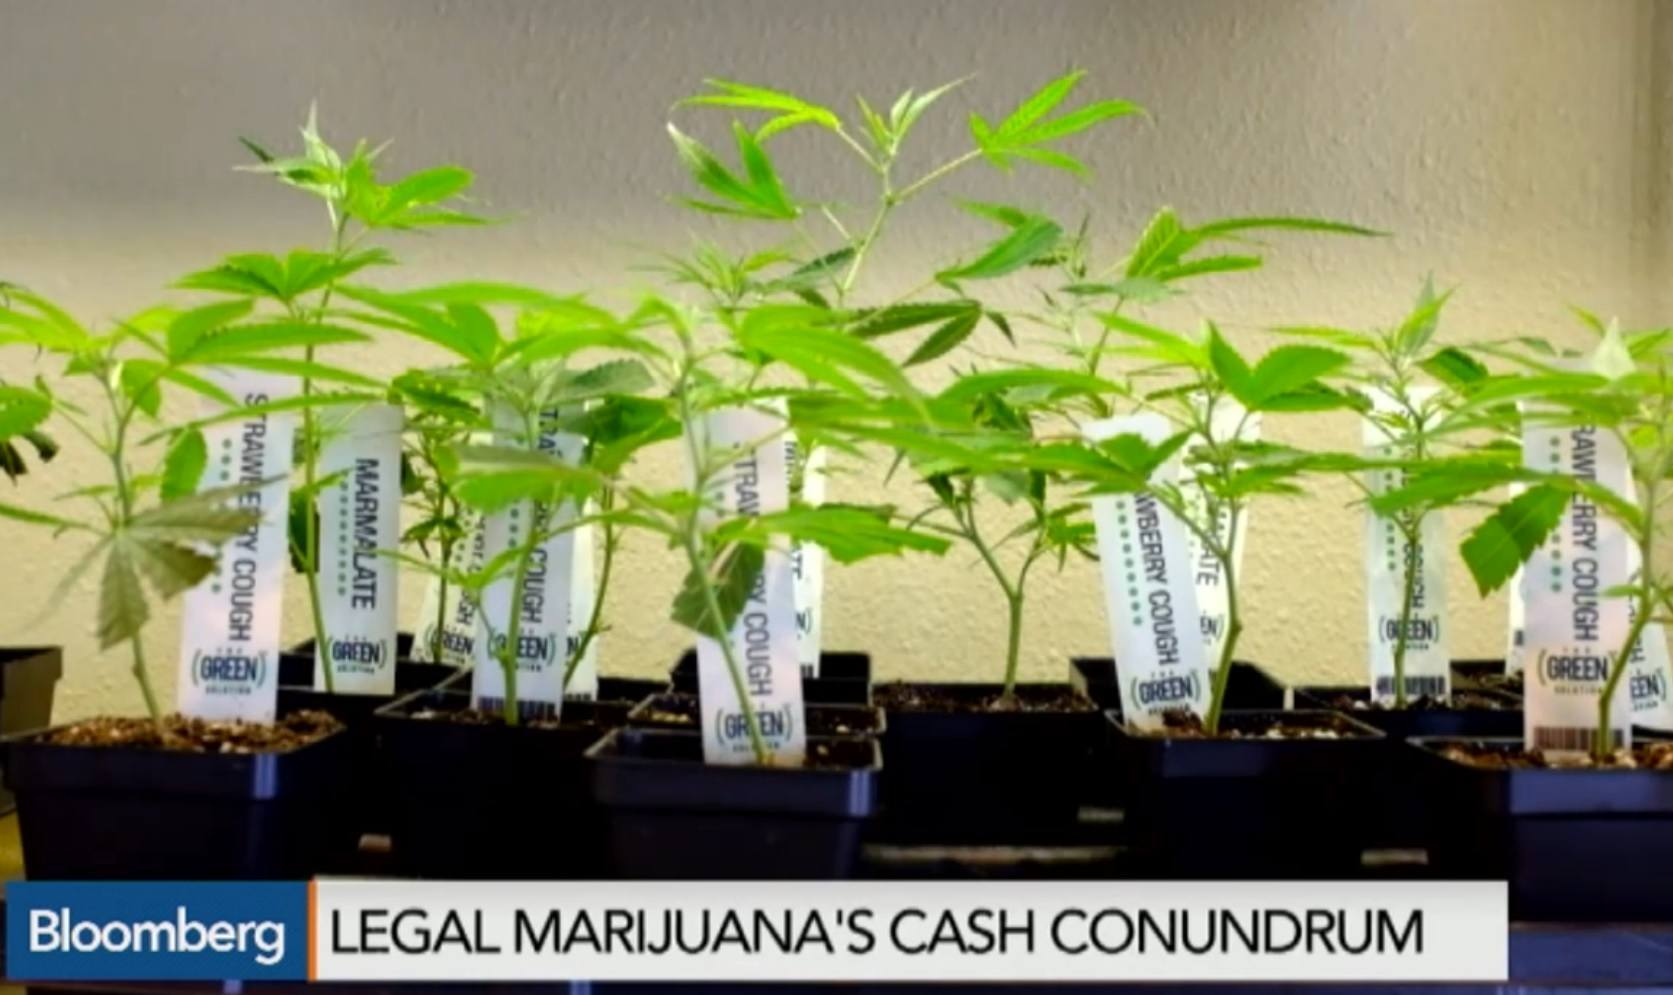 Image of Legal Marijuana plants available for sale